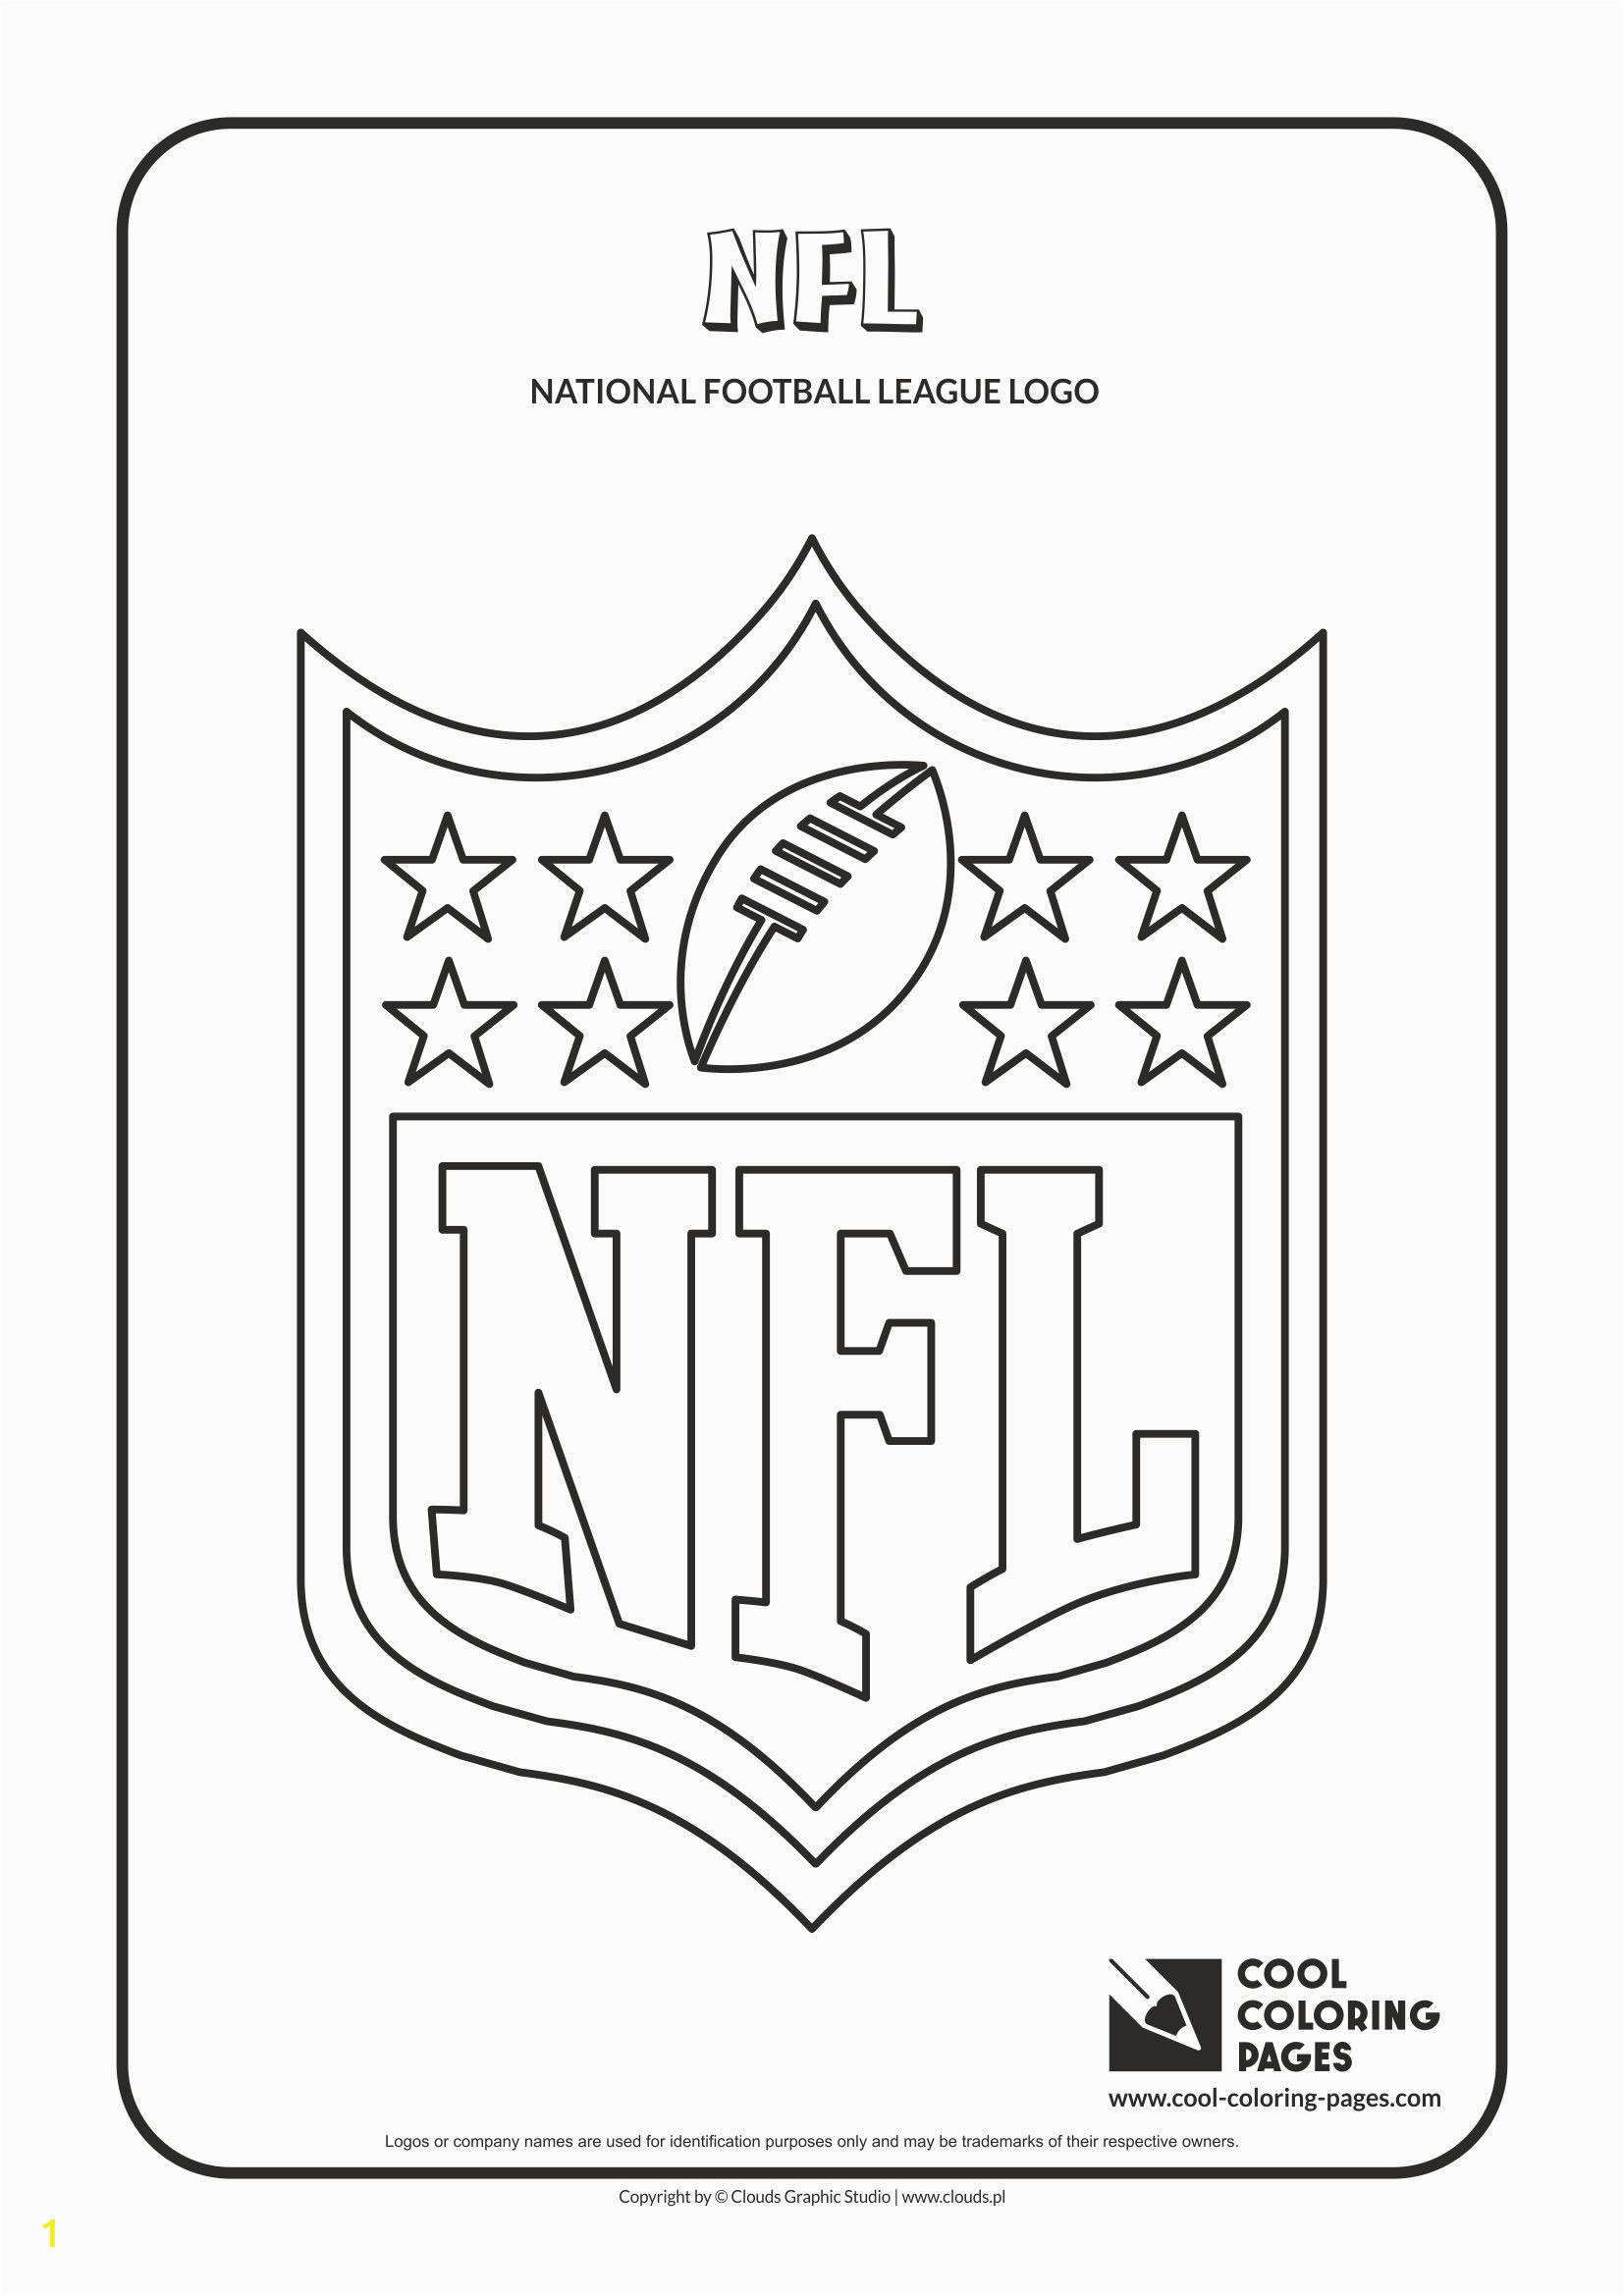 Nfl Football Team Logos Coloring Pages Cool Coloring Pages Nfl Teams Logos Coloring Pages Cool